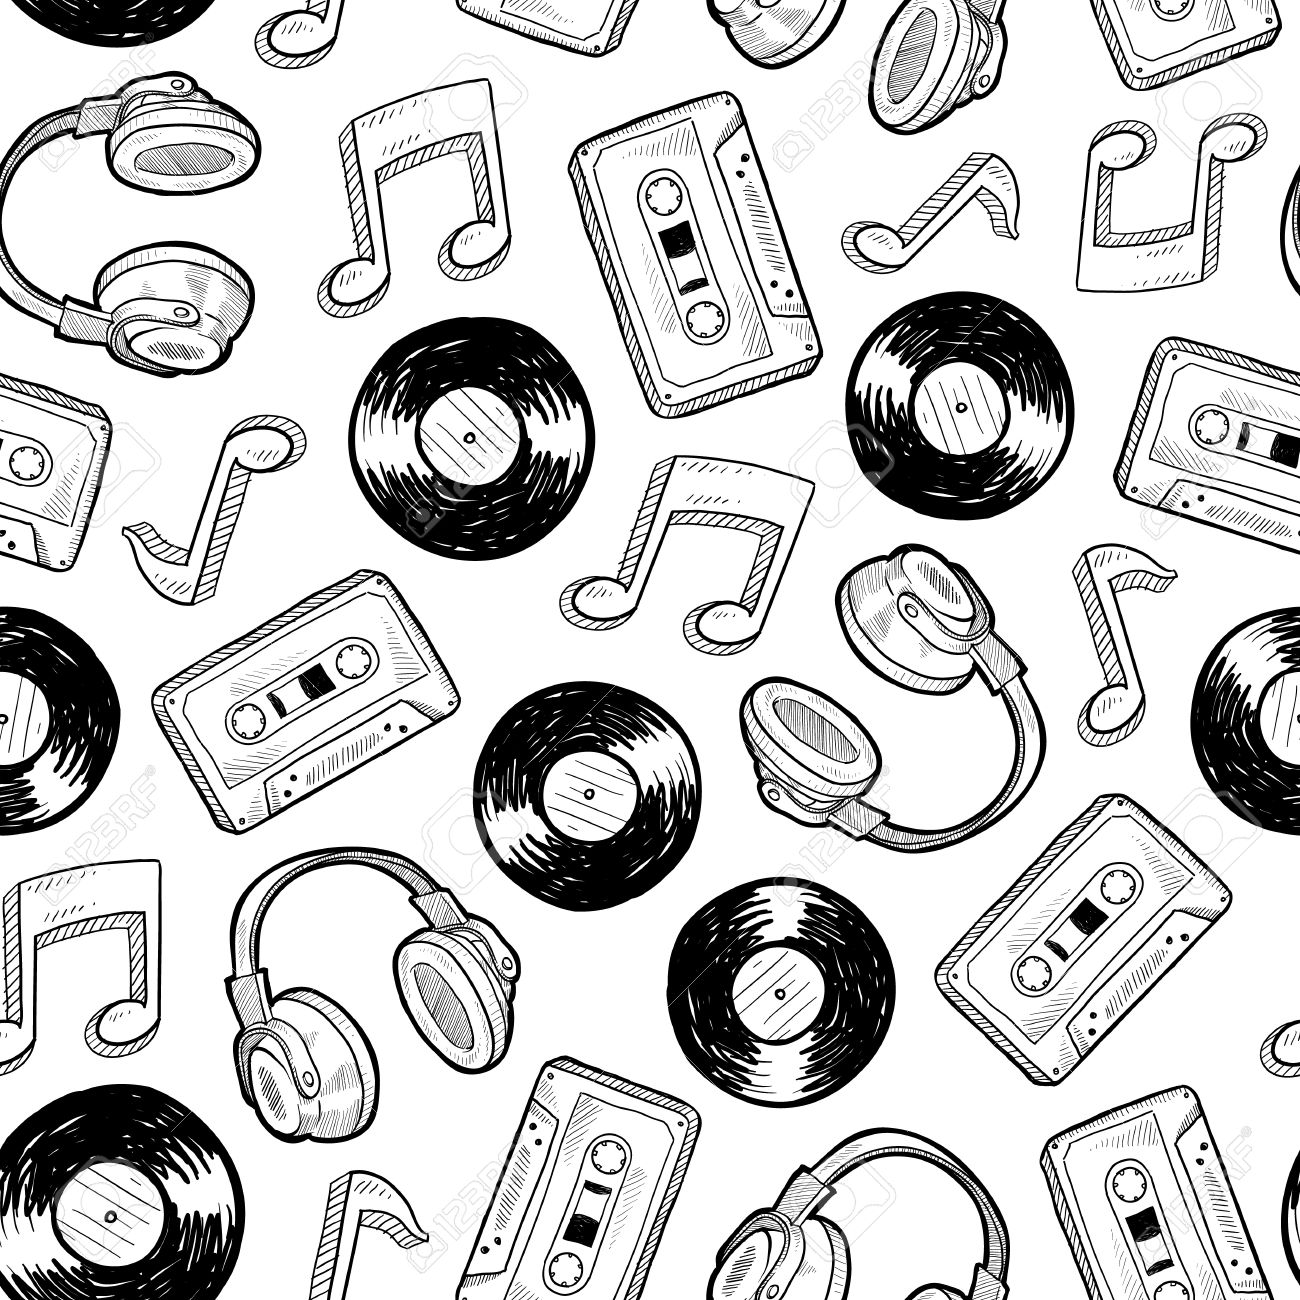 1300x1300 Doodle Style Music Media Seamless. Includes Vinyl Records, Music